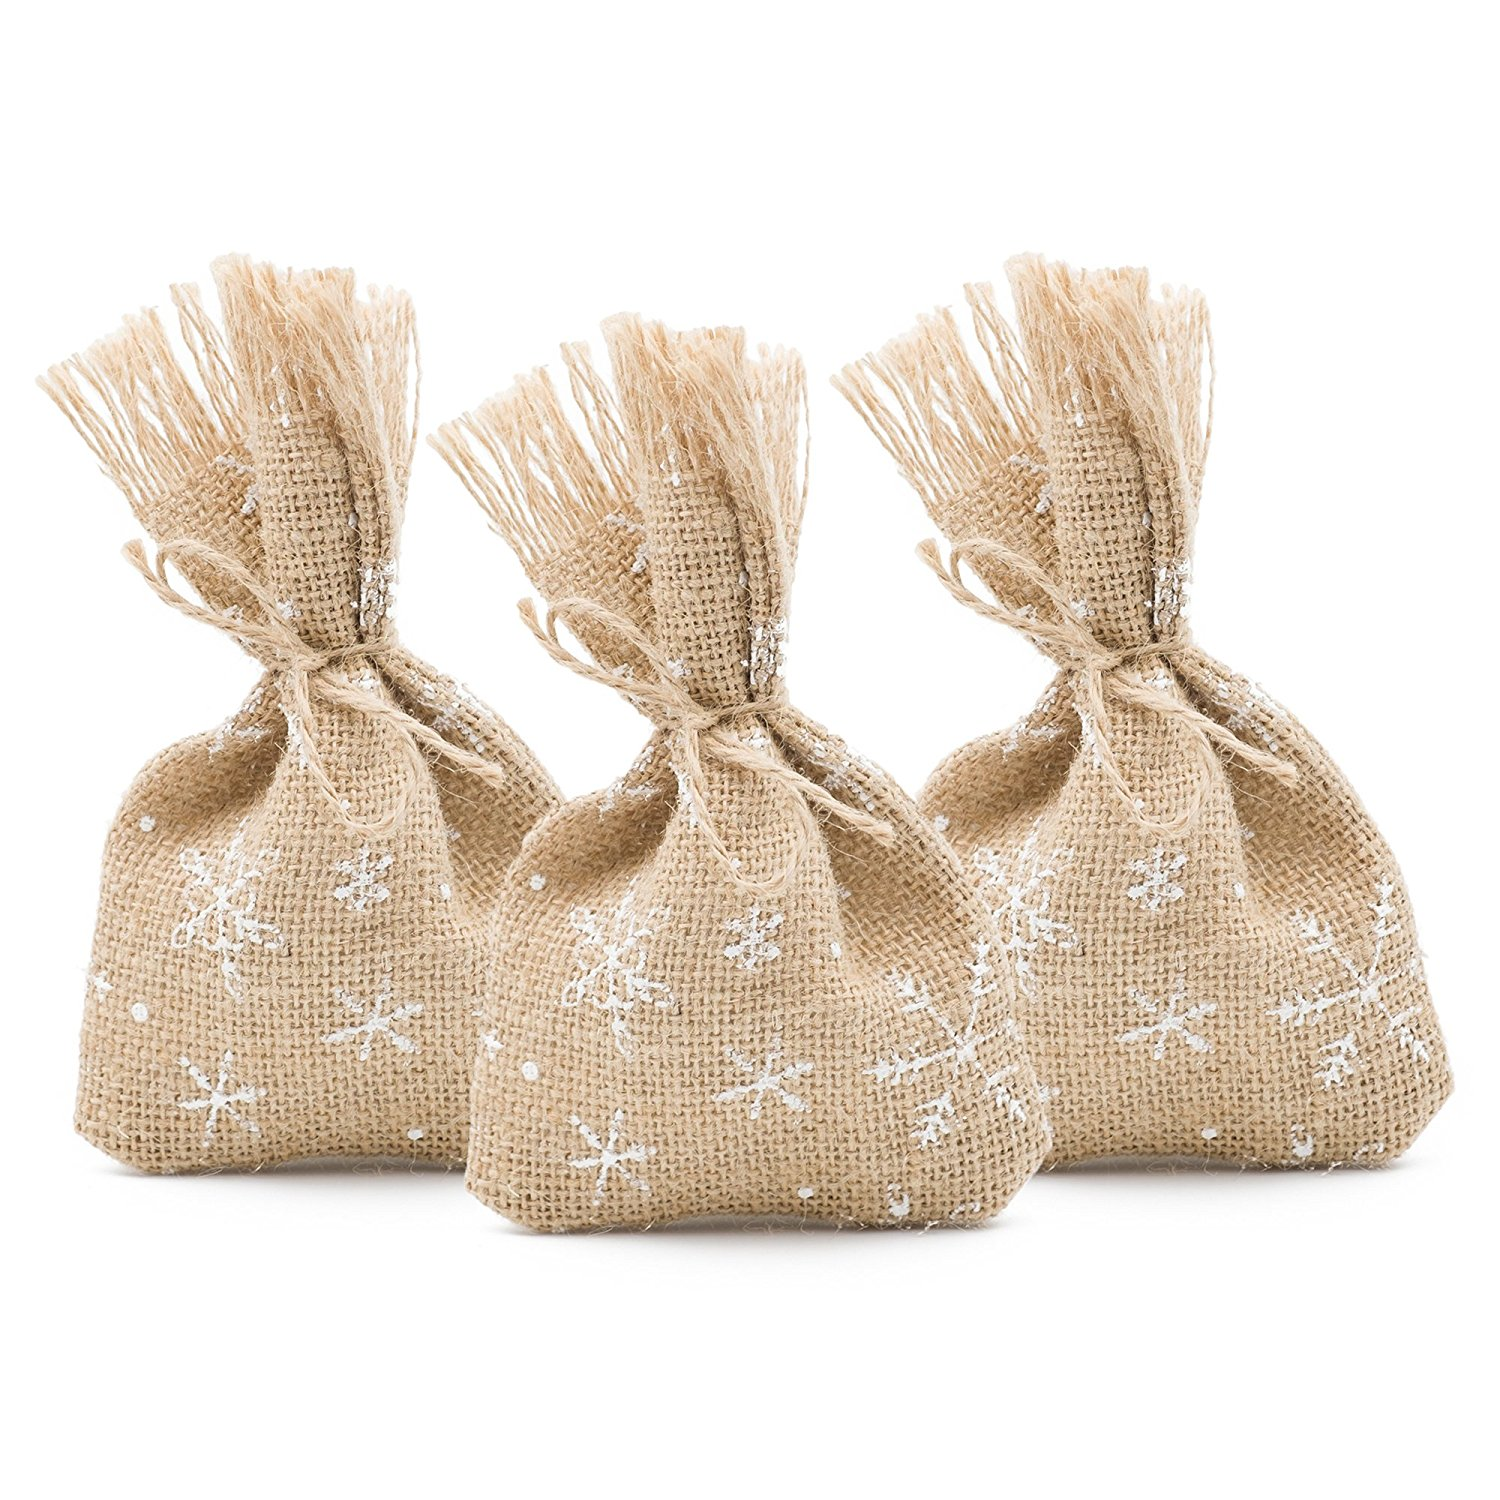 Ella Celebration 25 Winter Favor Gift Bags Burlap and White Snowflakes, 4 x 6 Inch, Christmas Wedding Party Decorations (White Snowflakes)